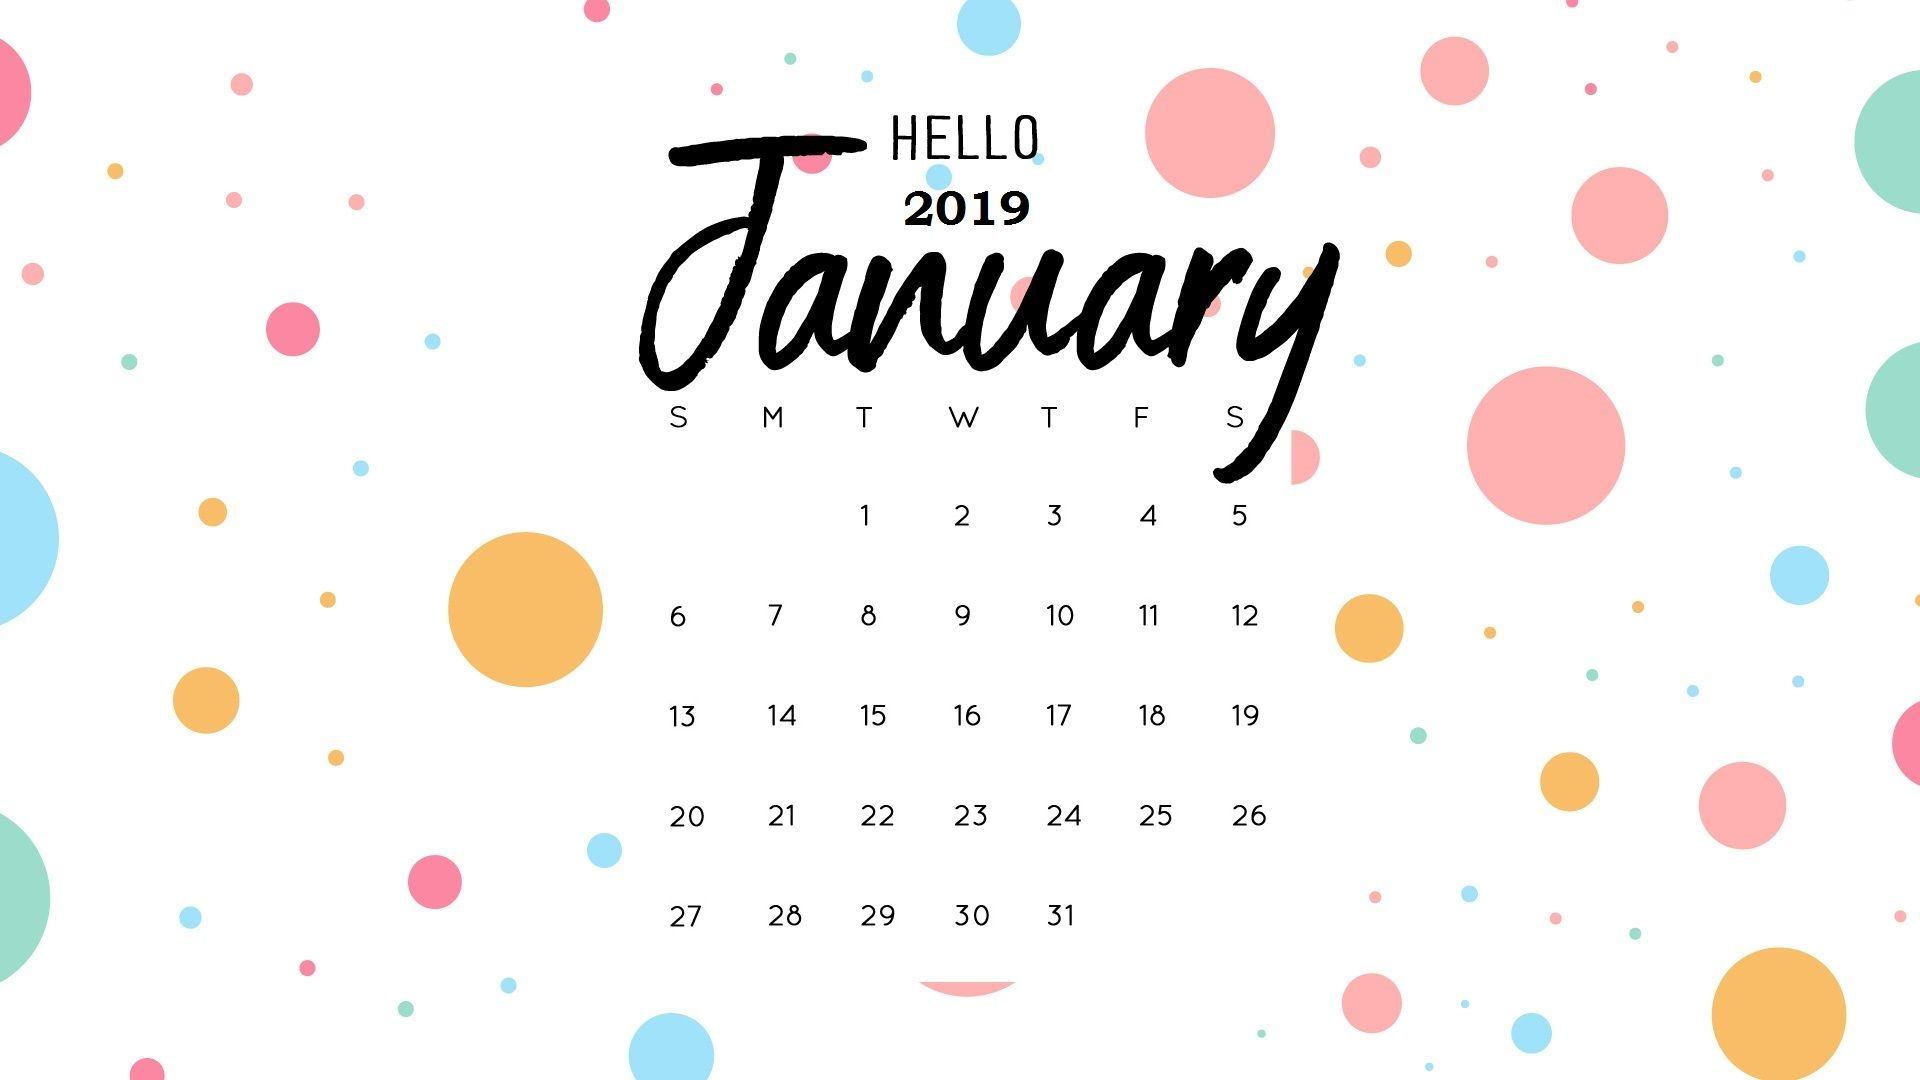 hello january 2019 calendar wallpaper monthly calendar templates::January 2019 Desktop Calendar Wallpaper